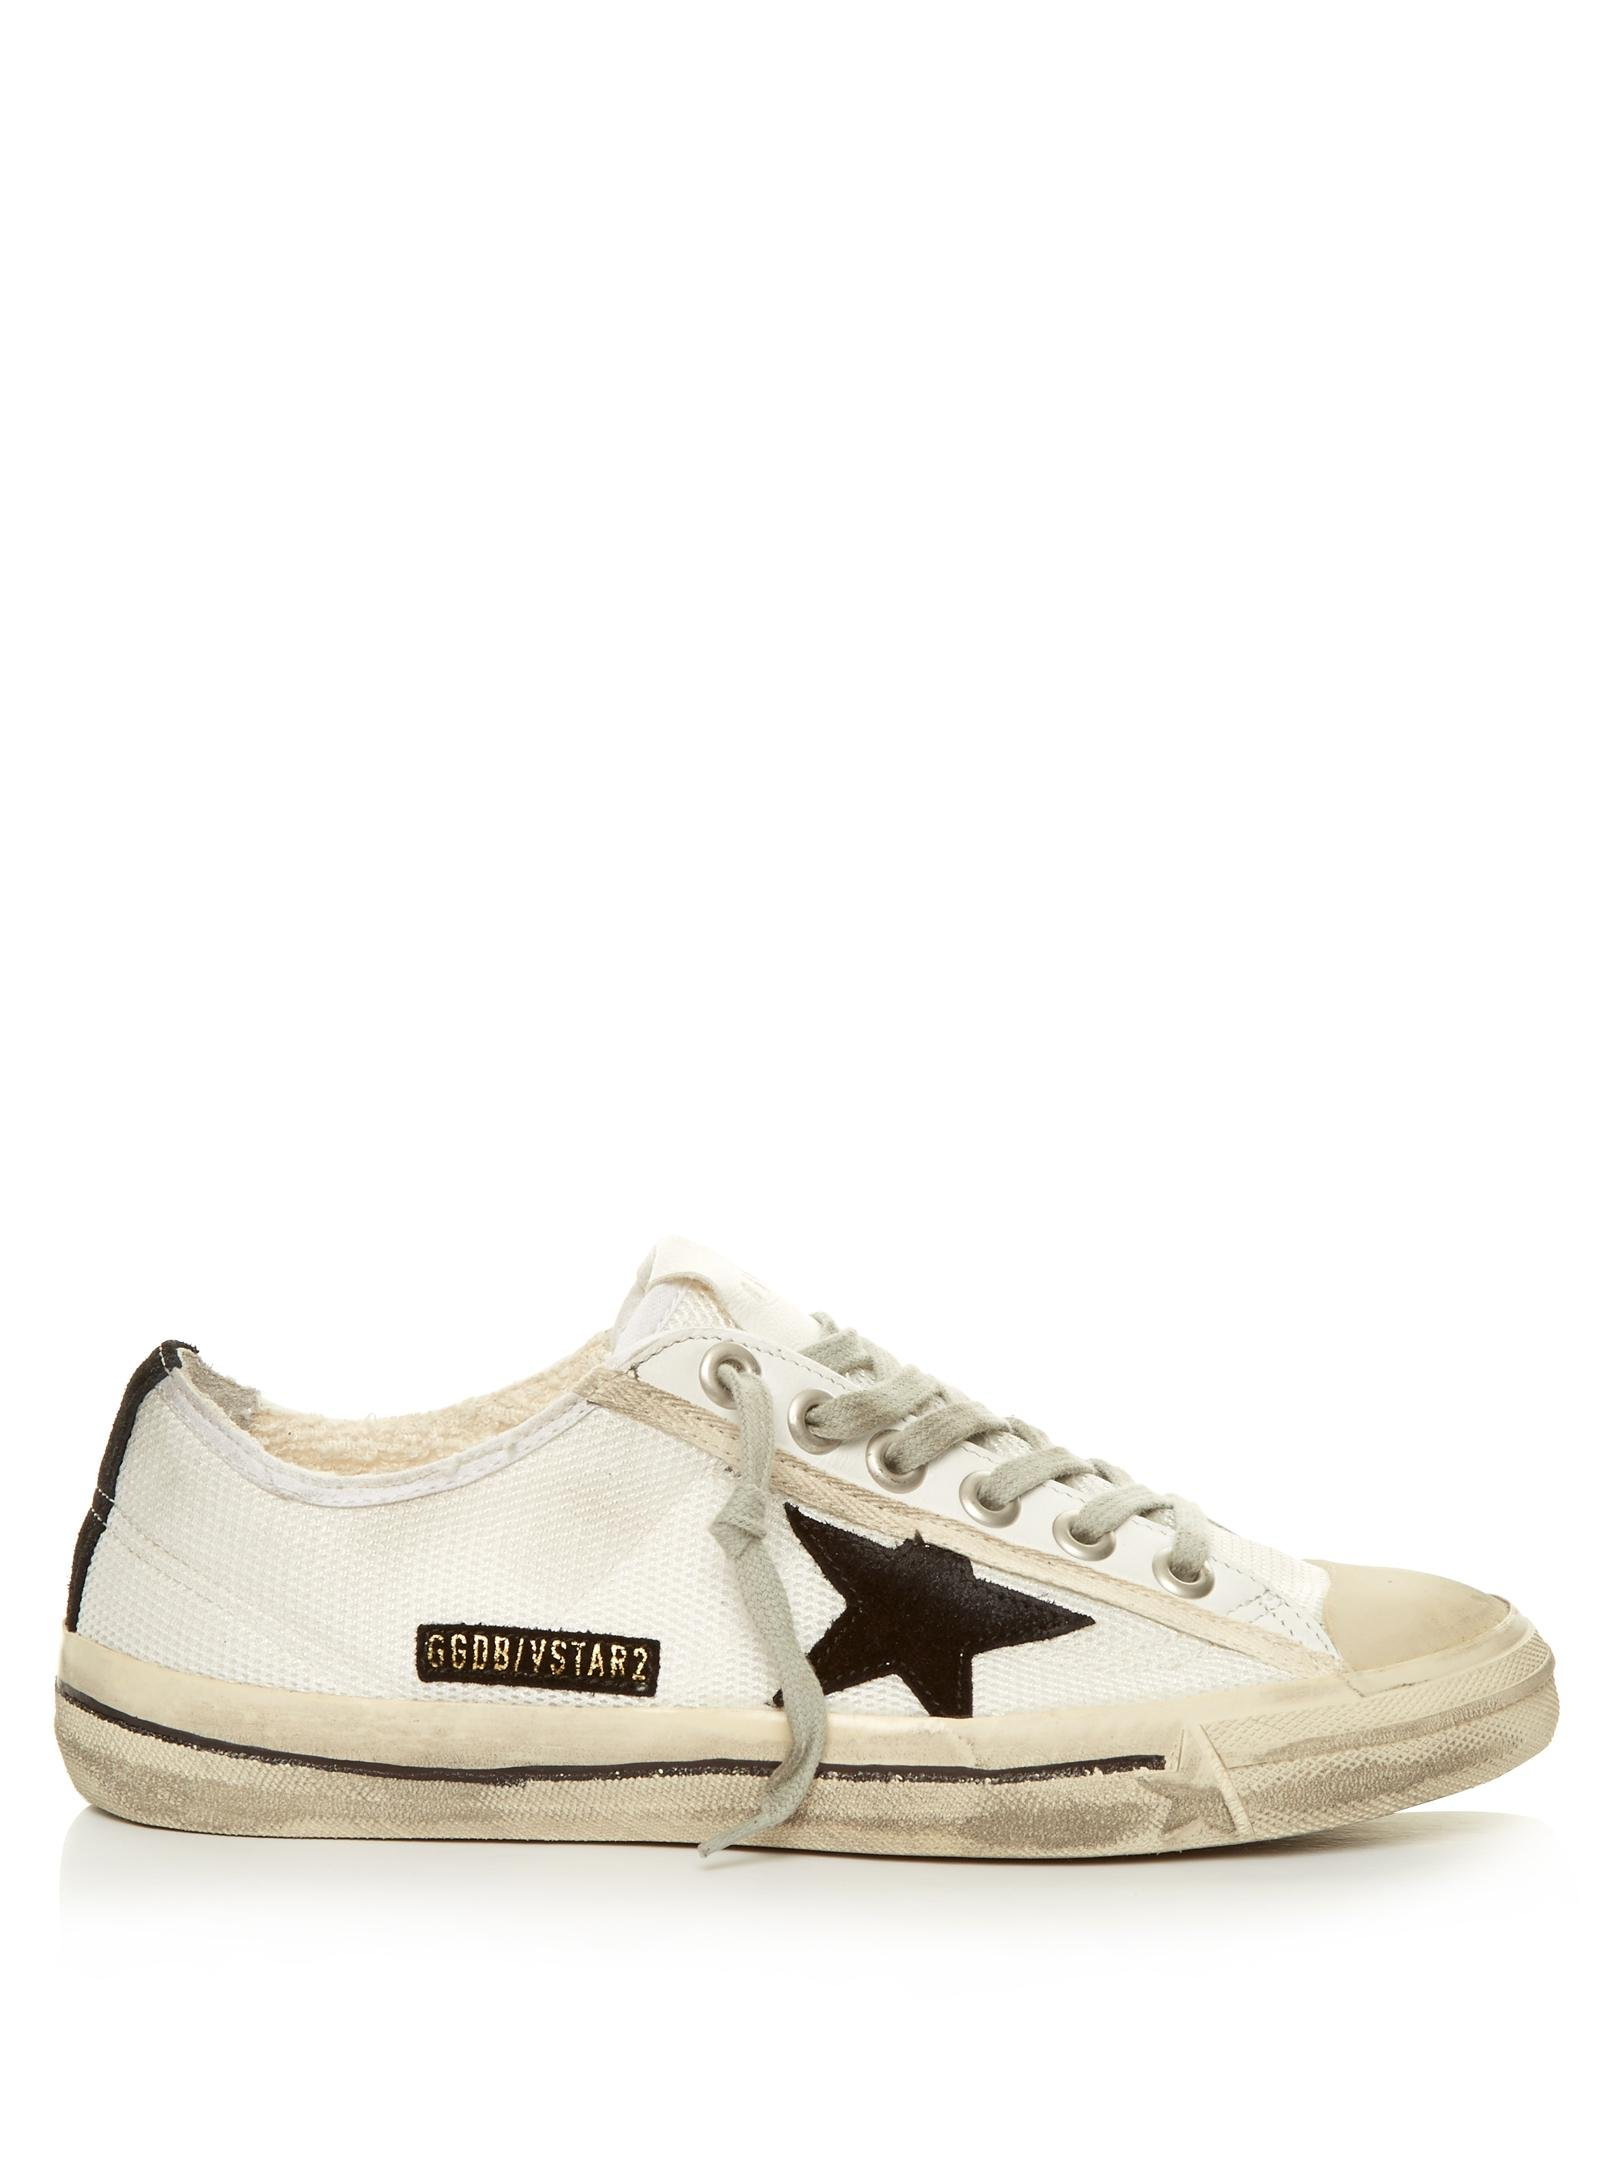 golden goose deluxe brand v star low top mesh trainers in white lyst. Black Bedroom Furniture Sets. Home Design Ideas